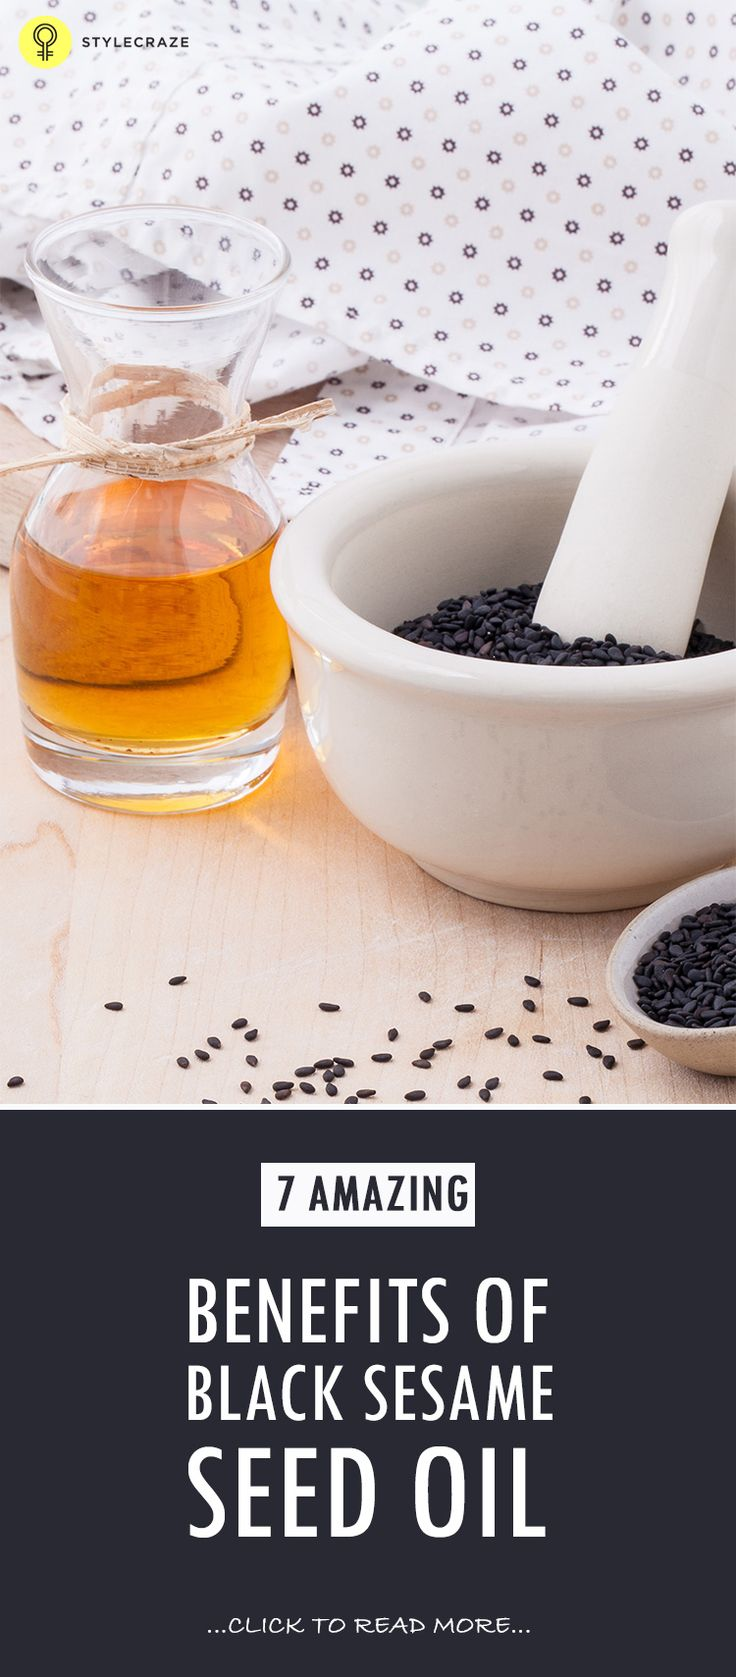 7 Amazing Benefits Of Black Sesame Seed Oil